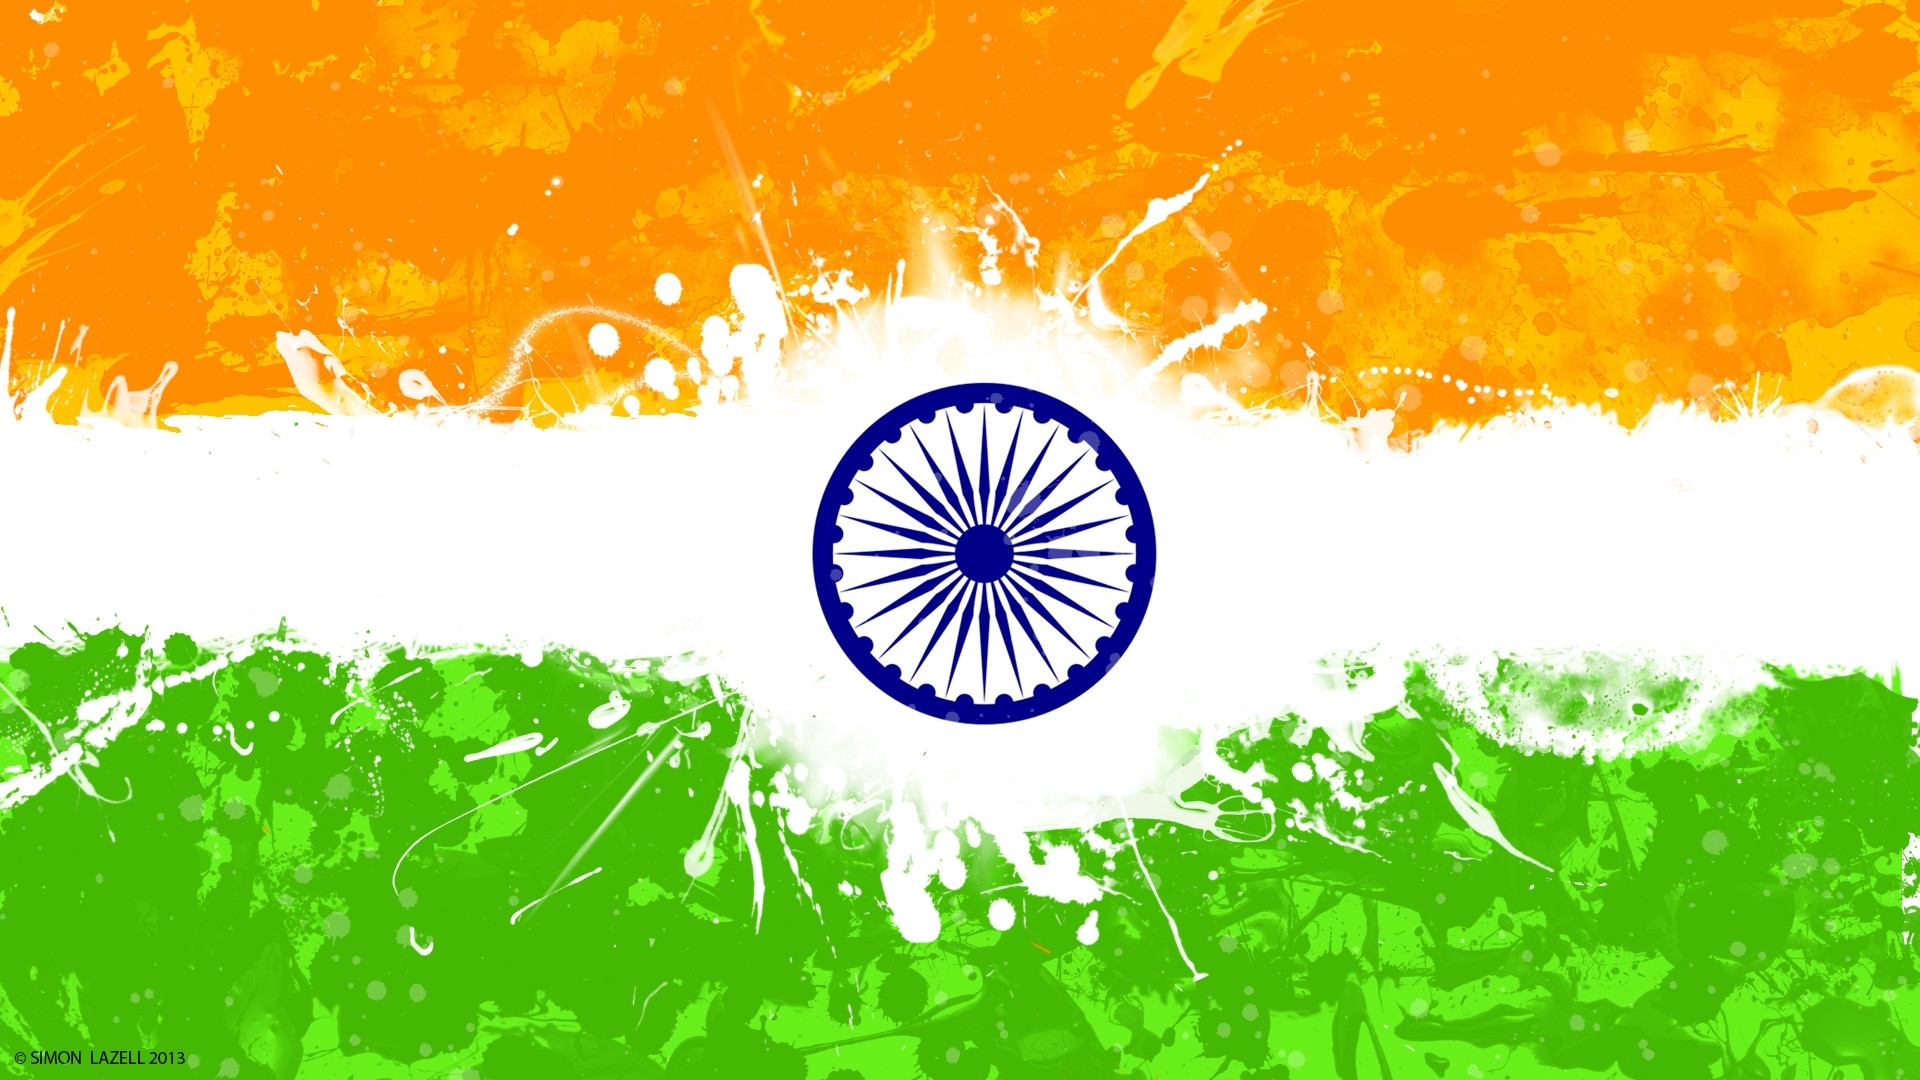 file:indian-flag-wallpapers-hd-images-free-download-2